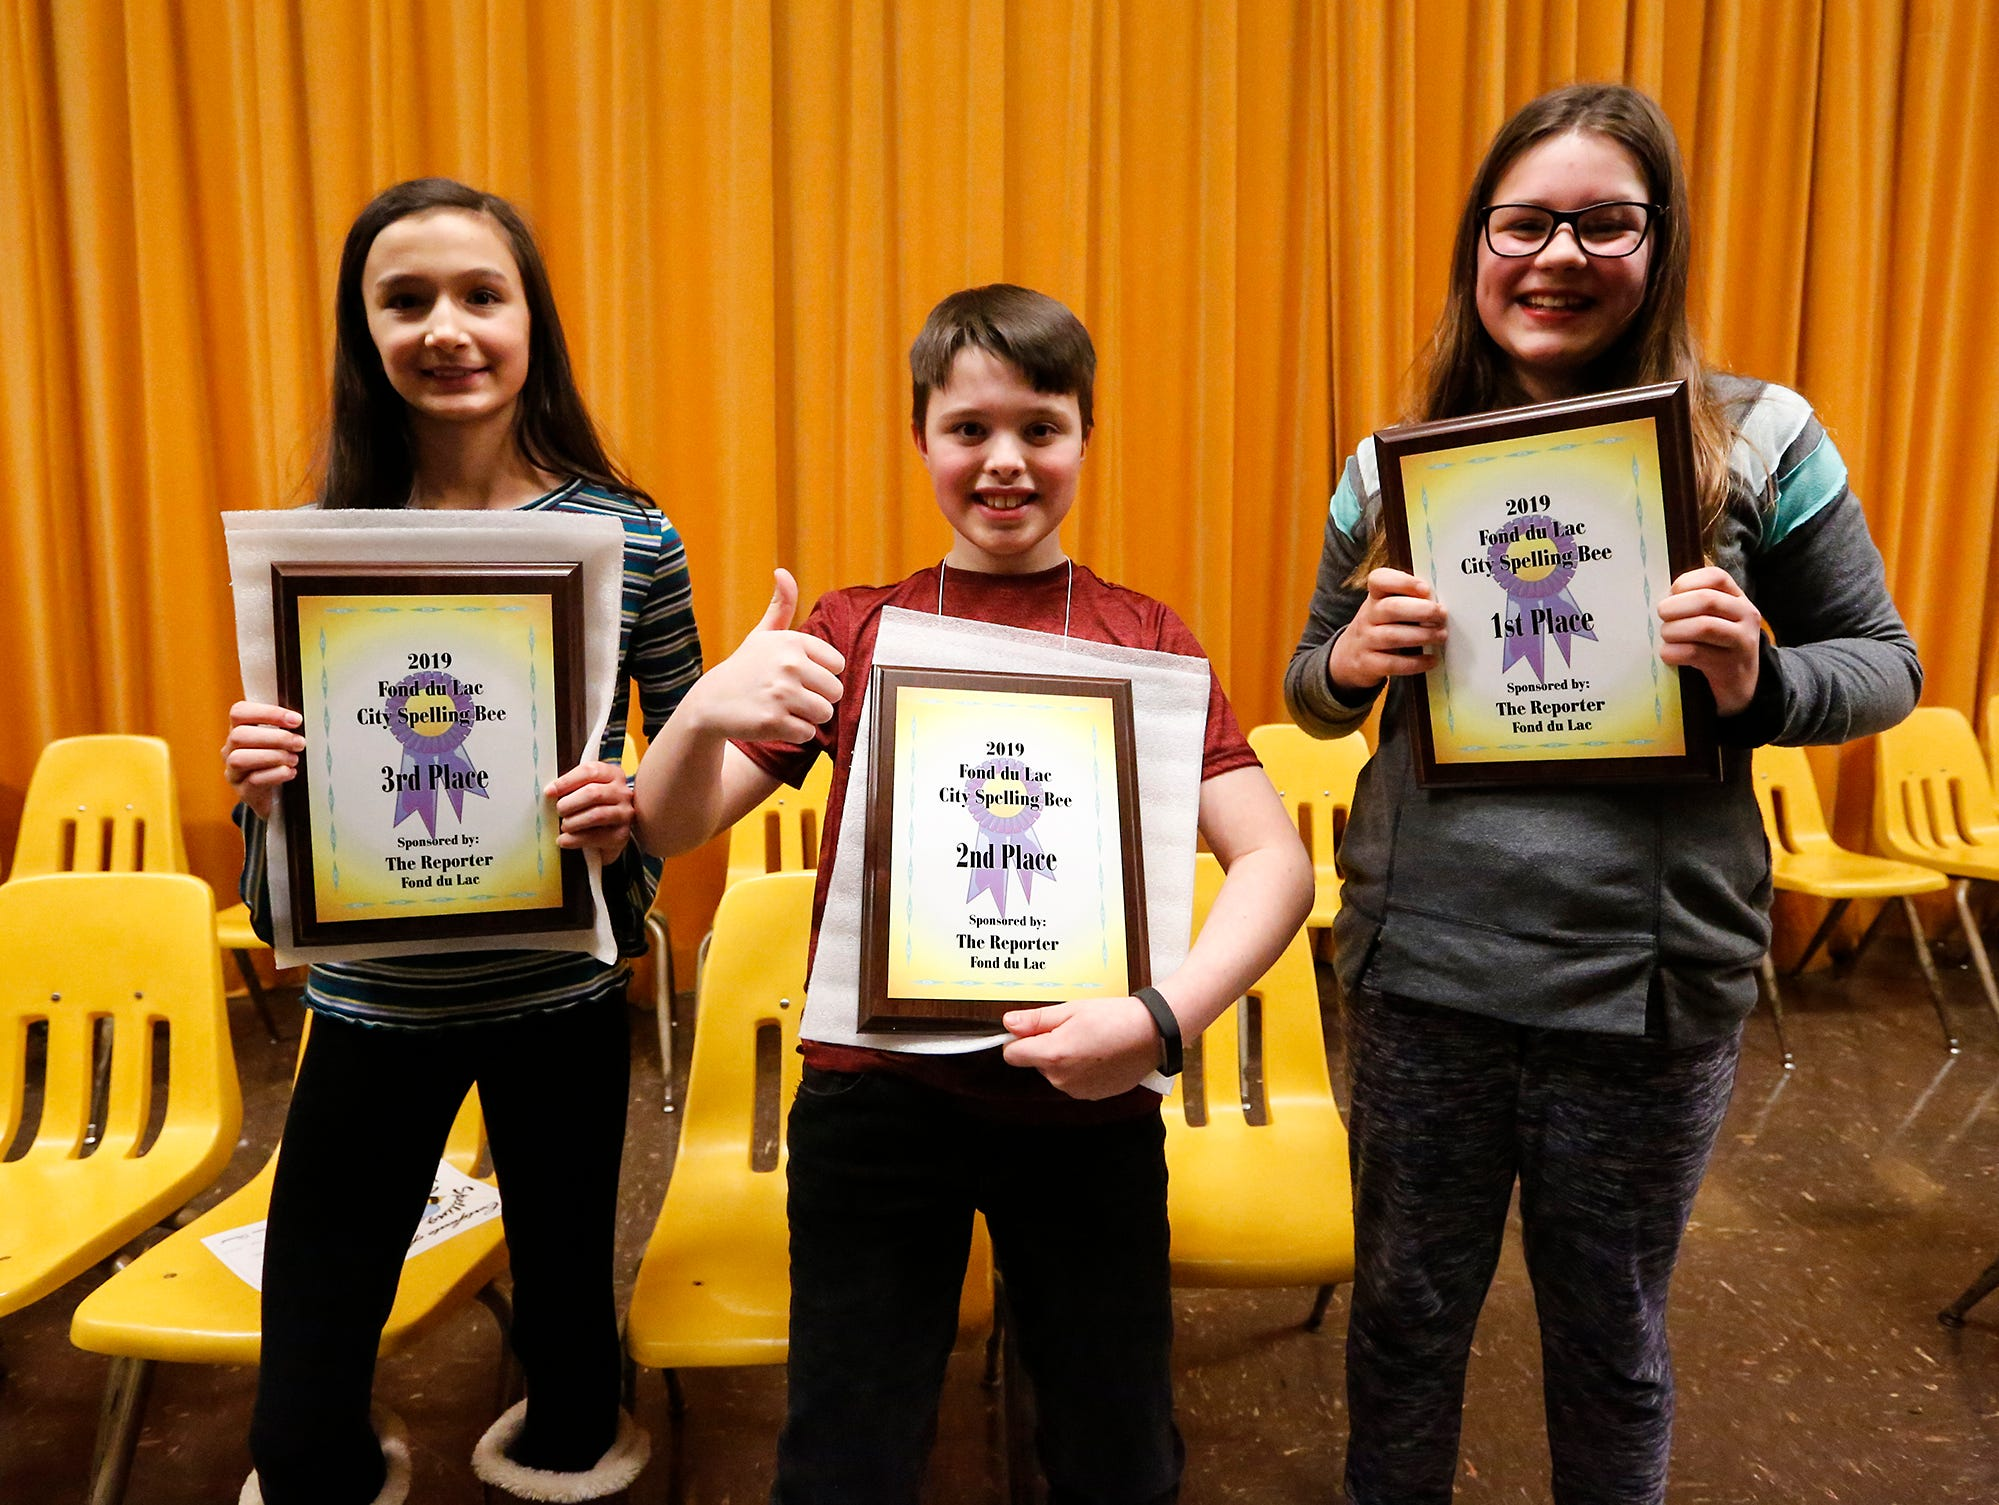 Winners of the 43rd annual Fond du Lac city spelling bee received plaques Tuesday, February 26, 2019 at the event at Theisen Middle School. From left to right are third place winner Lacey Keifenheim of Faith Lutheran, second place winner Ben Tschetter and first place winner Sophia Utecht both of Roberts Elementary. 38 students from 19 area schools competed in the event. Doug Raflik/USA TODAY NETWORK-Wisconsin